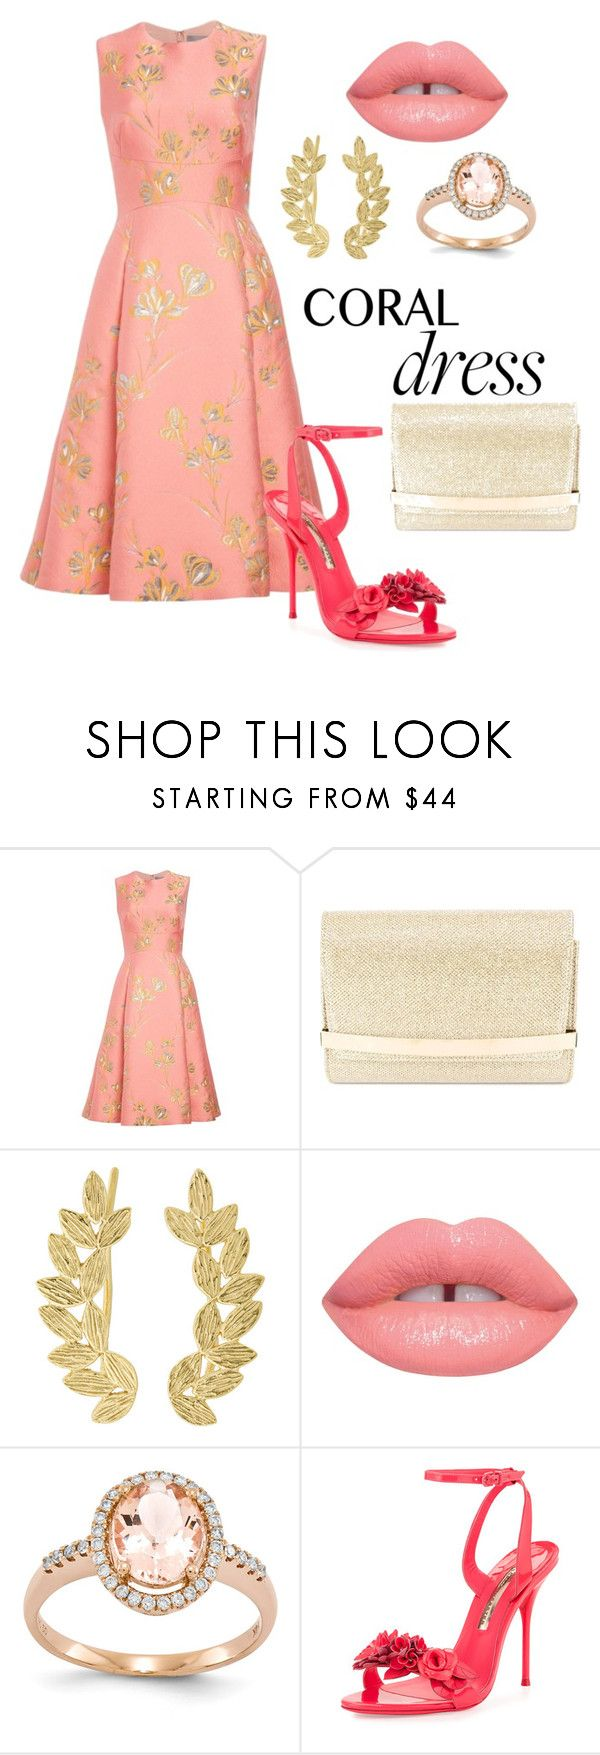 """""""Coral Dress"""" by nataliavillegas ❤ liked on Polyvore featuring Lela Rose, Jimmy Choo, Eddera, Lime Crime, Sophia Webster, gold, coral, dress and LelaRose"""